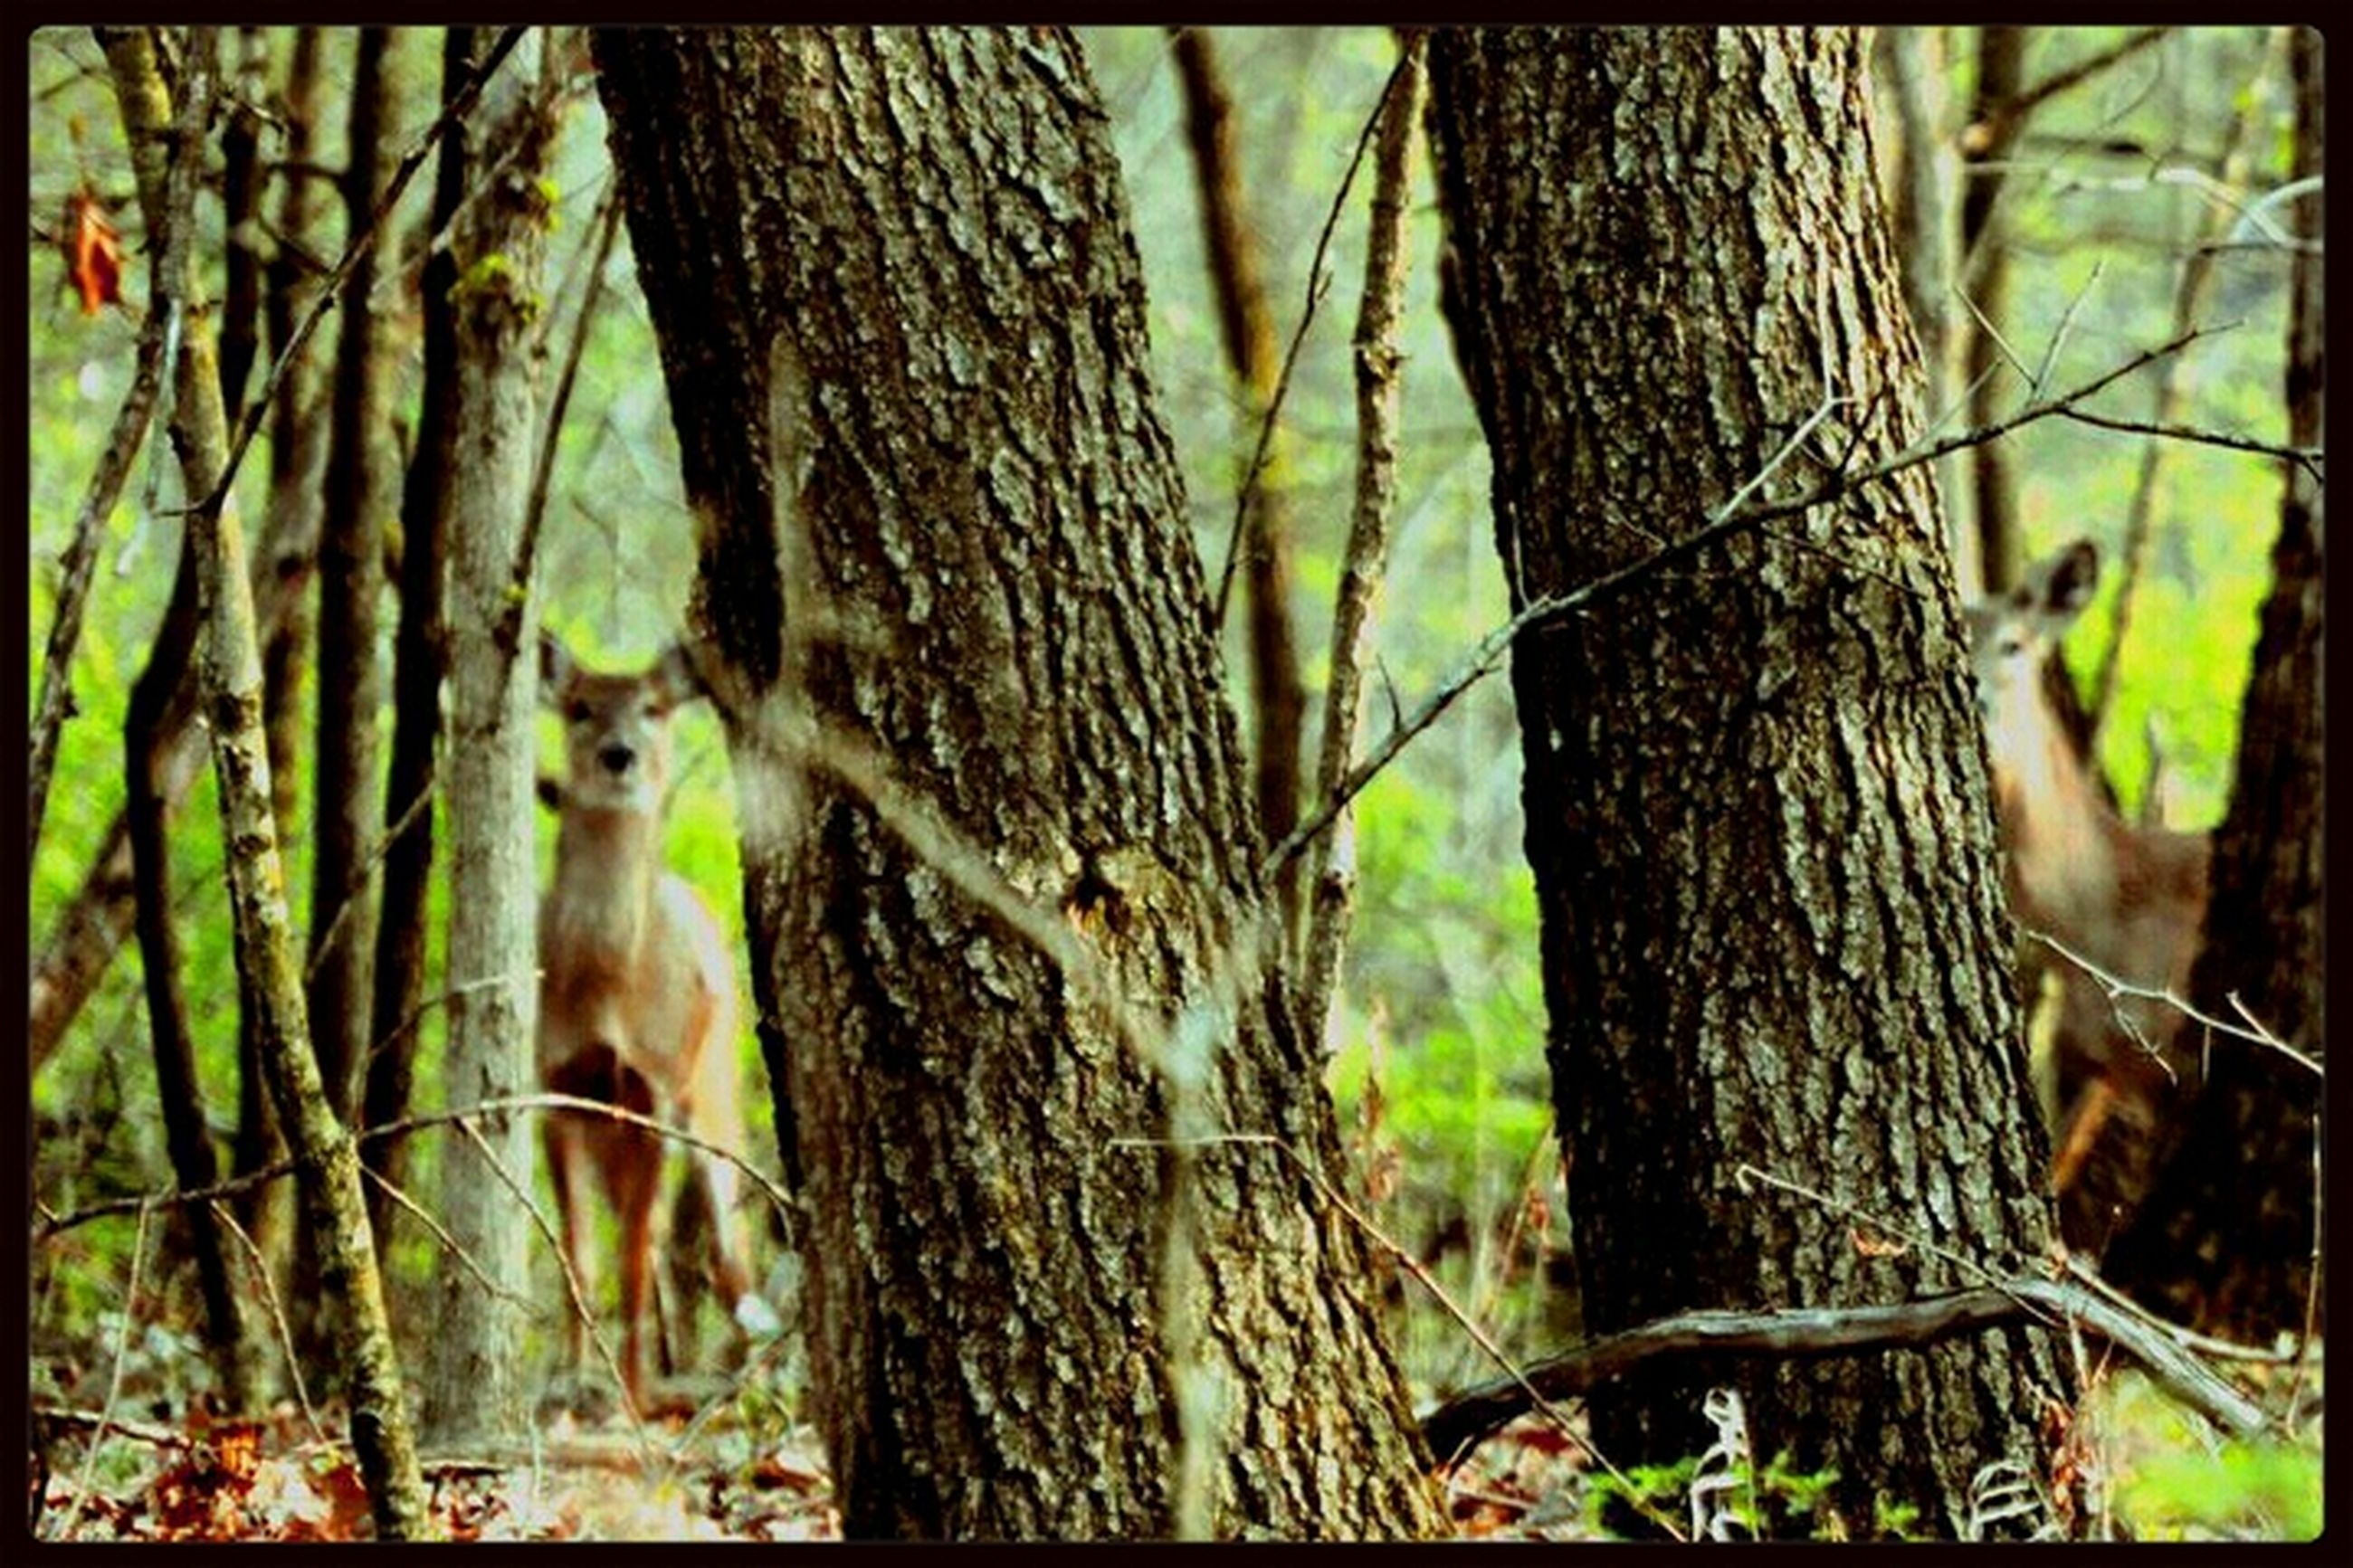 animal themes, tree trunk, tree, wildlife, animals in the wild, forest, one animal, branch, mammal, nature, growth, transfer print, day, outdoors, squirrel, no people, woodland, auto post production filter, focus on foreground, zoology